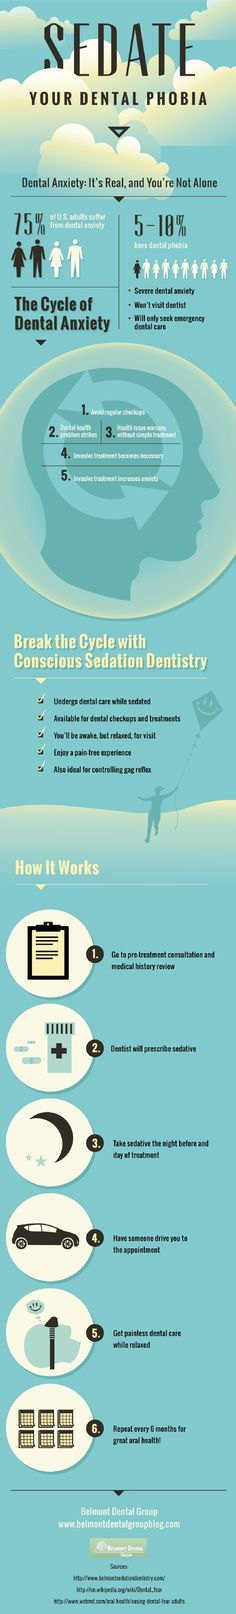 Conscious sedation dentistry. #Dental #Infographic